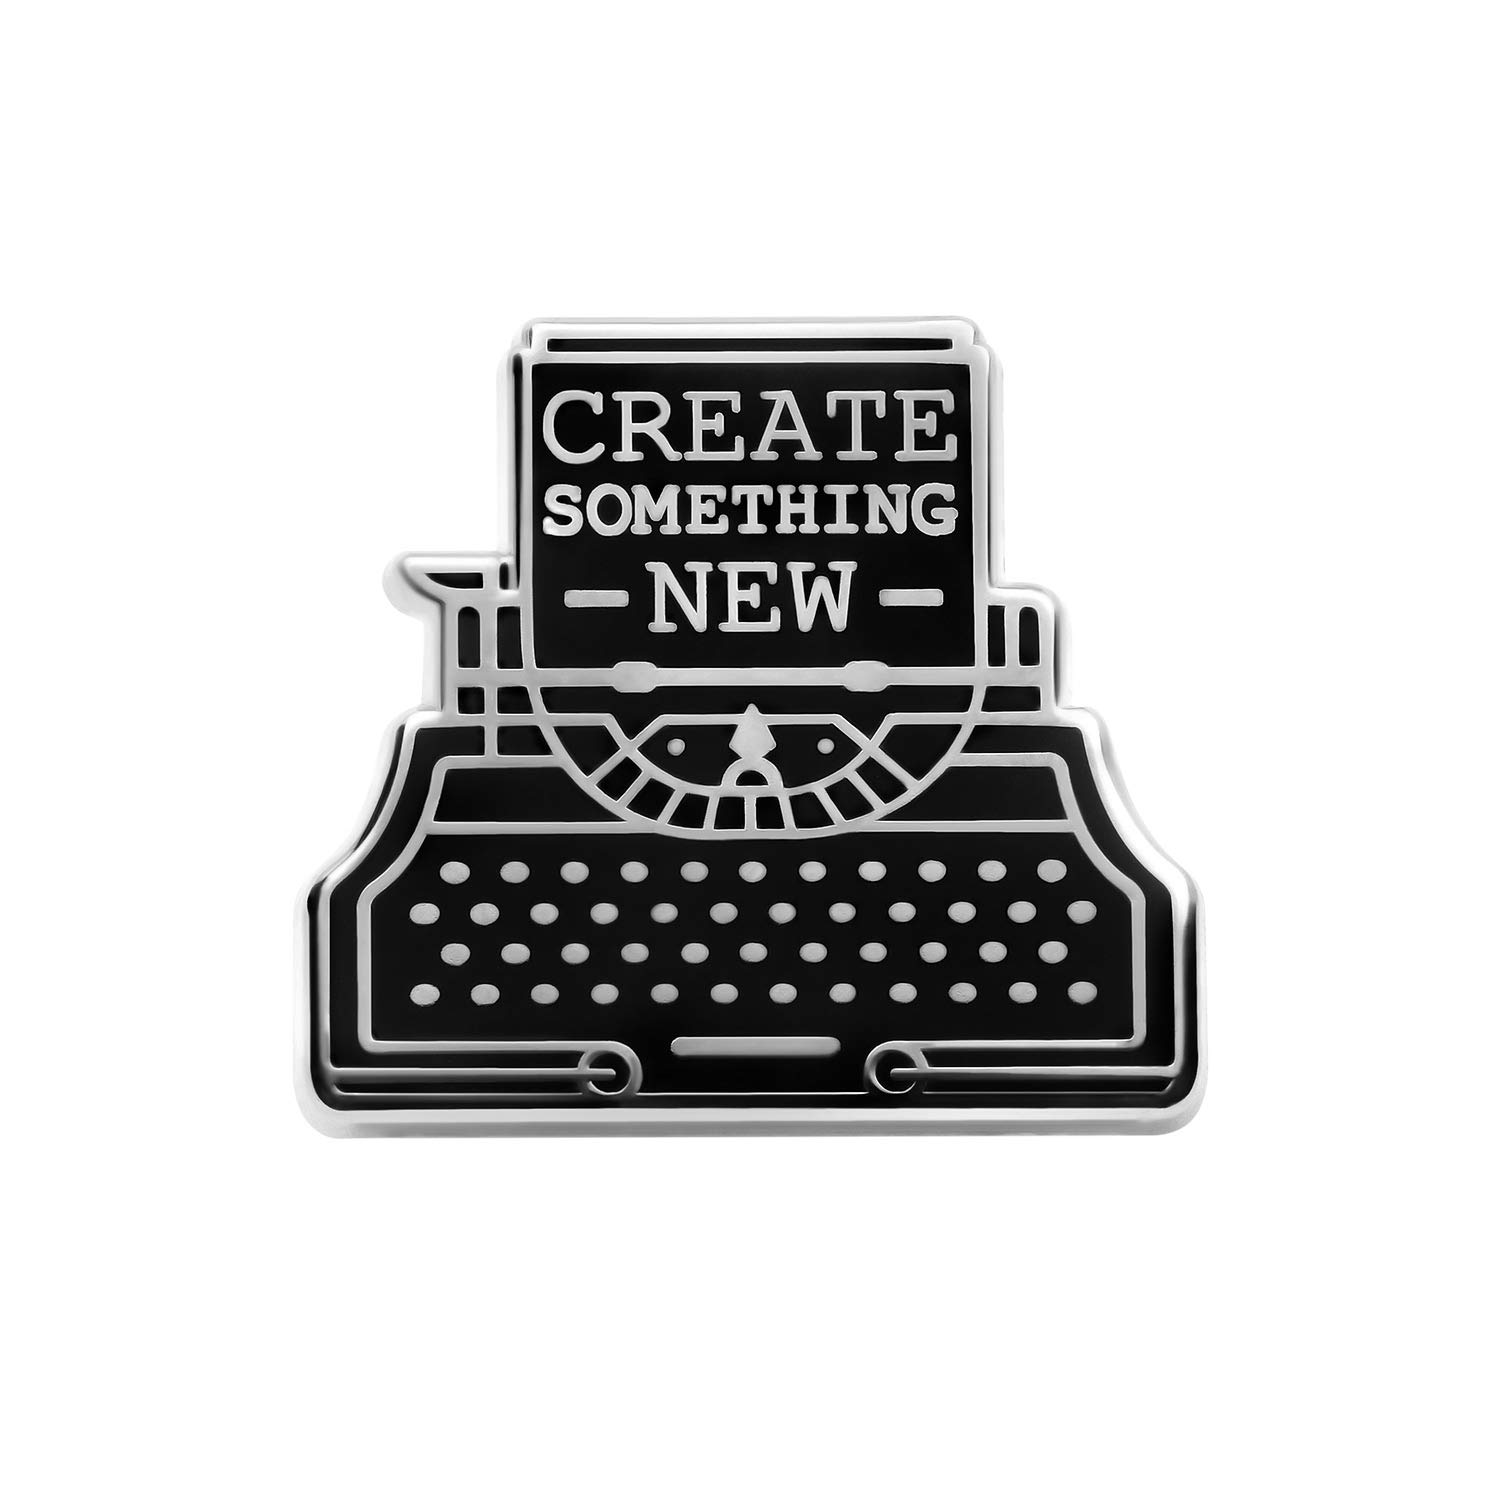 Asilda Store Create Something New Typewriter Lapel Enamel Pin [With Deluxe Pin Lock] 4336833850